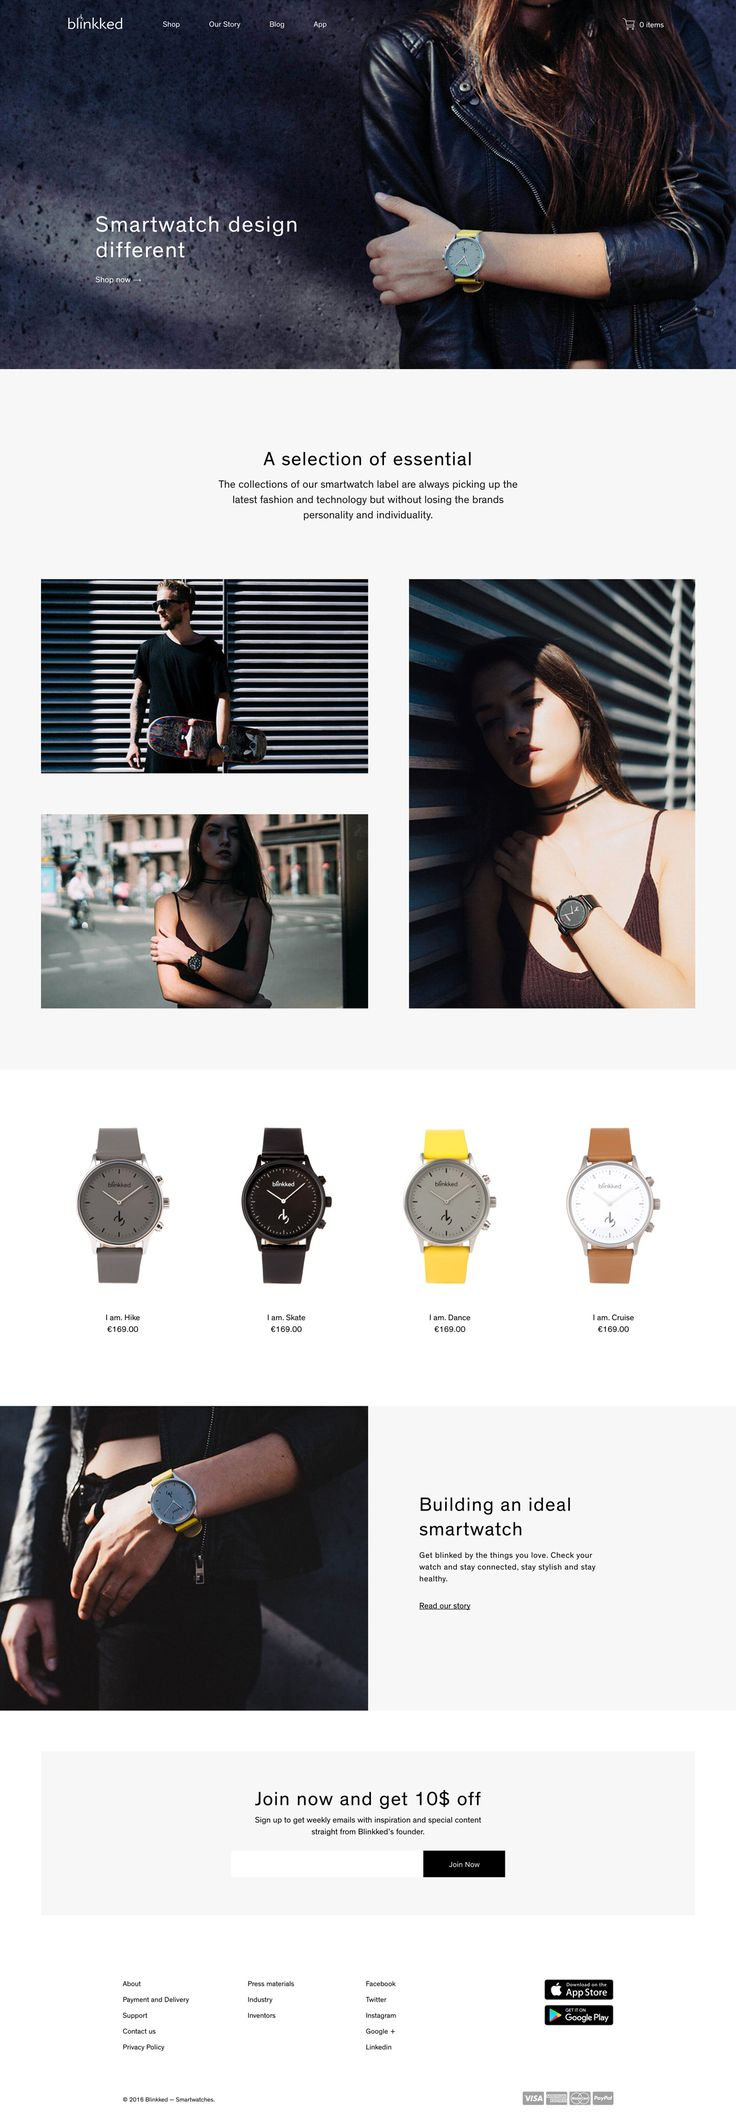 Blinkked Smartwatch http://mindsparklemag.com/website/blinkked-smartwatch/ Blinkked Smartwatch is a website awarded as site of the day sotd for its beautiful webdesign and their design watches design by Degordian and seen on Mindsparkle Mag